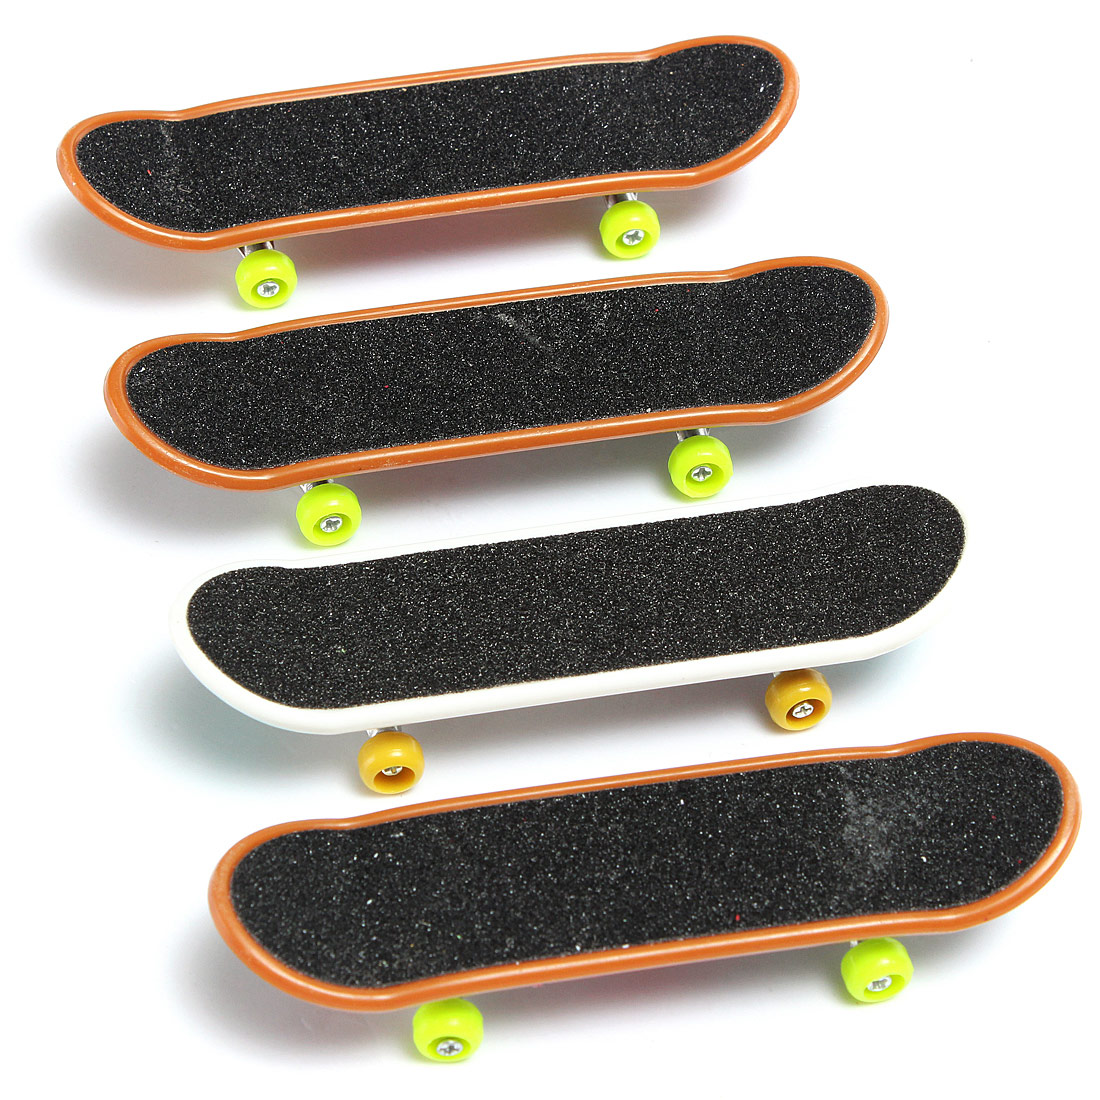 Halloluck 10 Pcs Matte Metal Mini Fingerboards Finger Skateboard Toy Professional Mini Fingerboards for Kids Birthday Gifts Party Supplies Party Favors